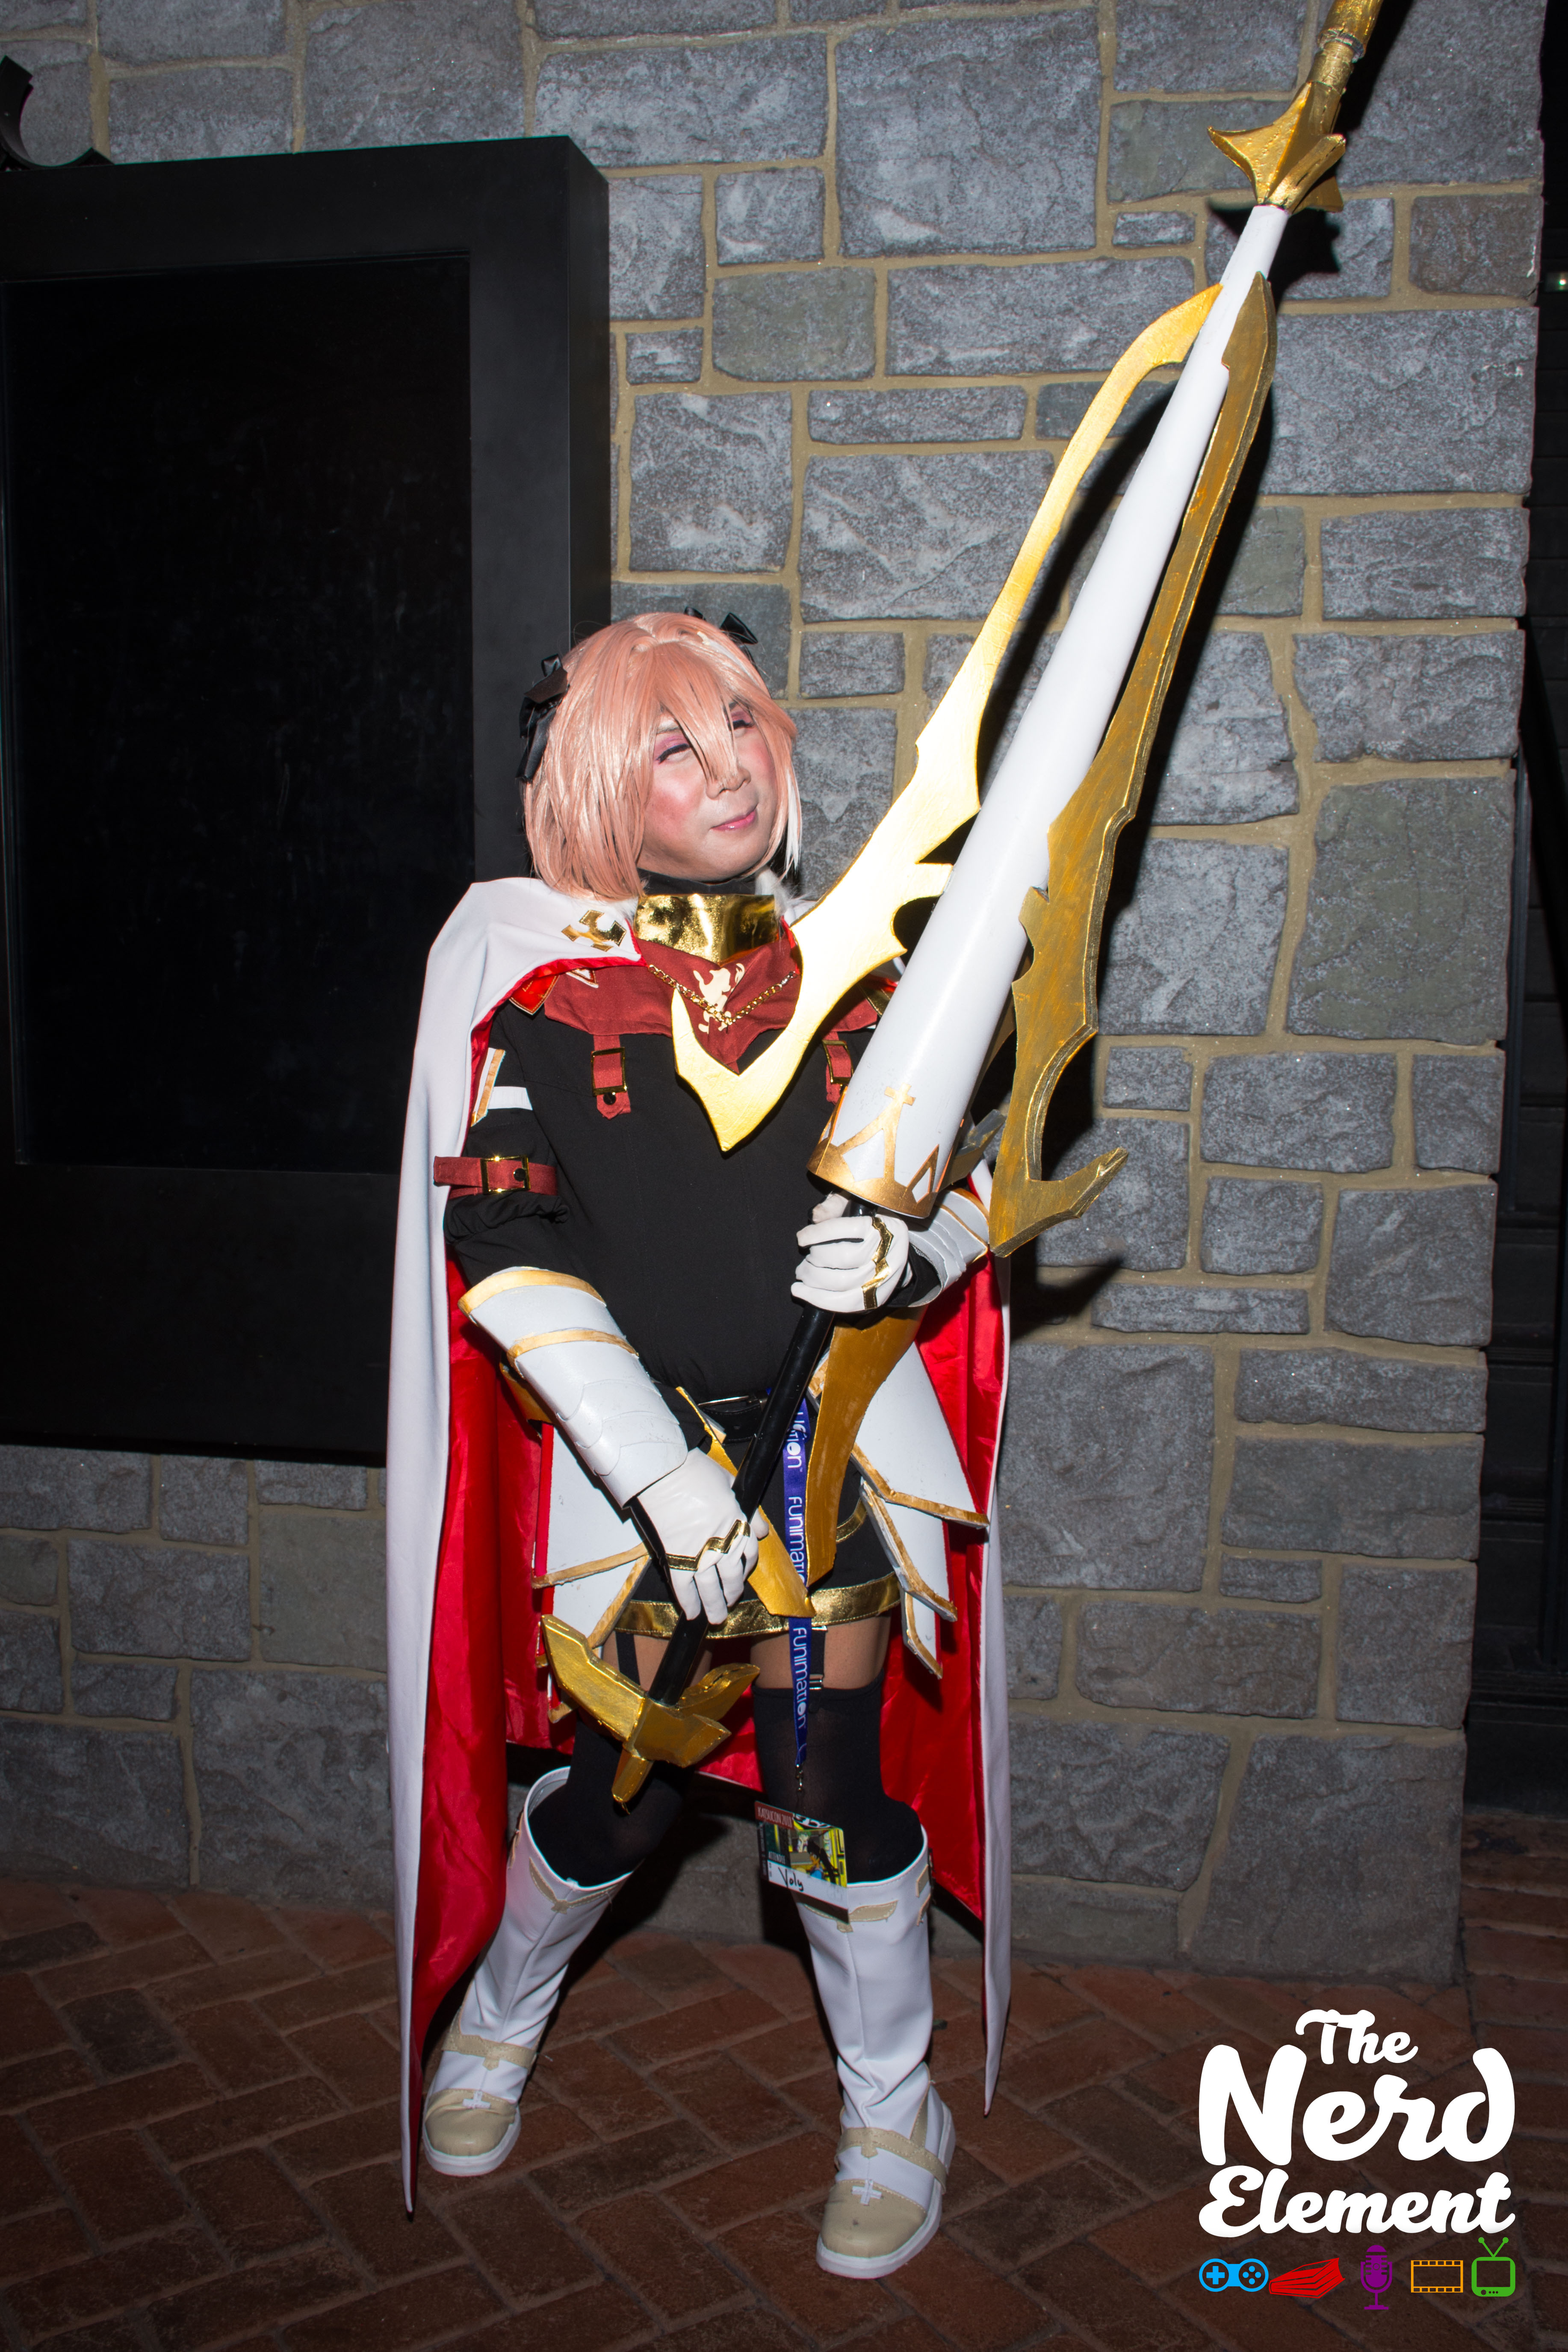 Astolfo - Fate/Apocrypha  Cosplayer unknown